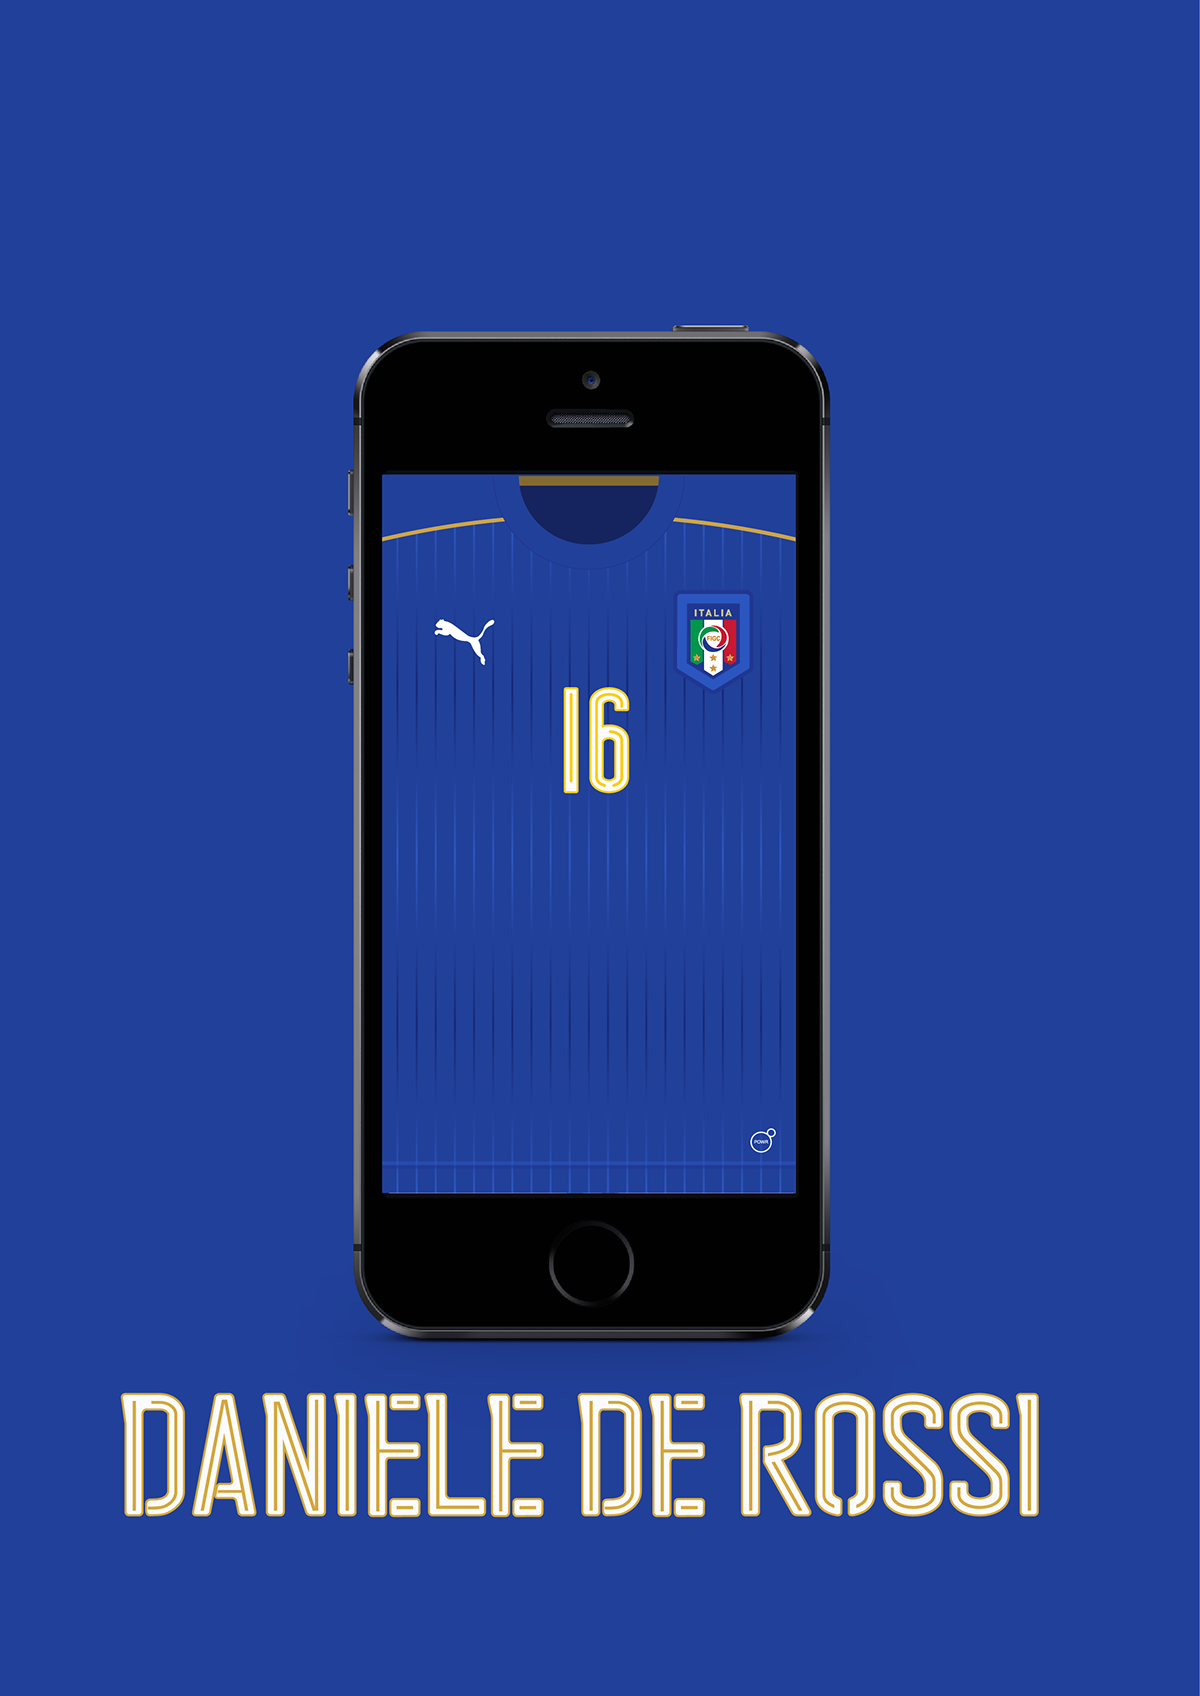 Euro 2016 italy jersey wallpaper on behance you can download the wallpaper here httpsfacebookfactotumlab voltagebd Images